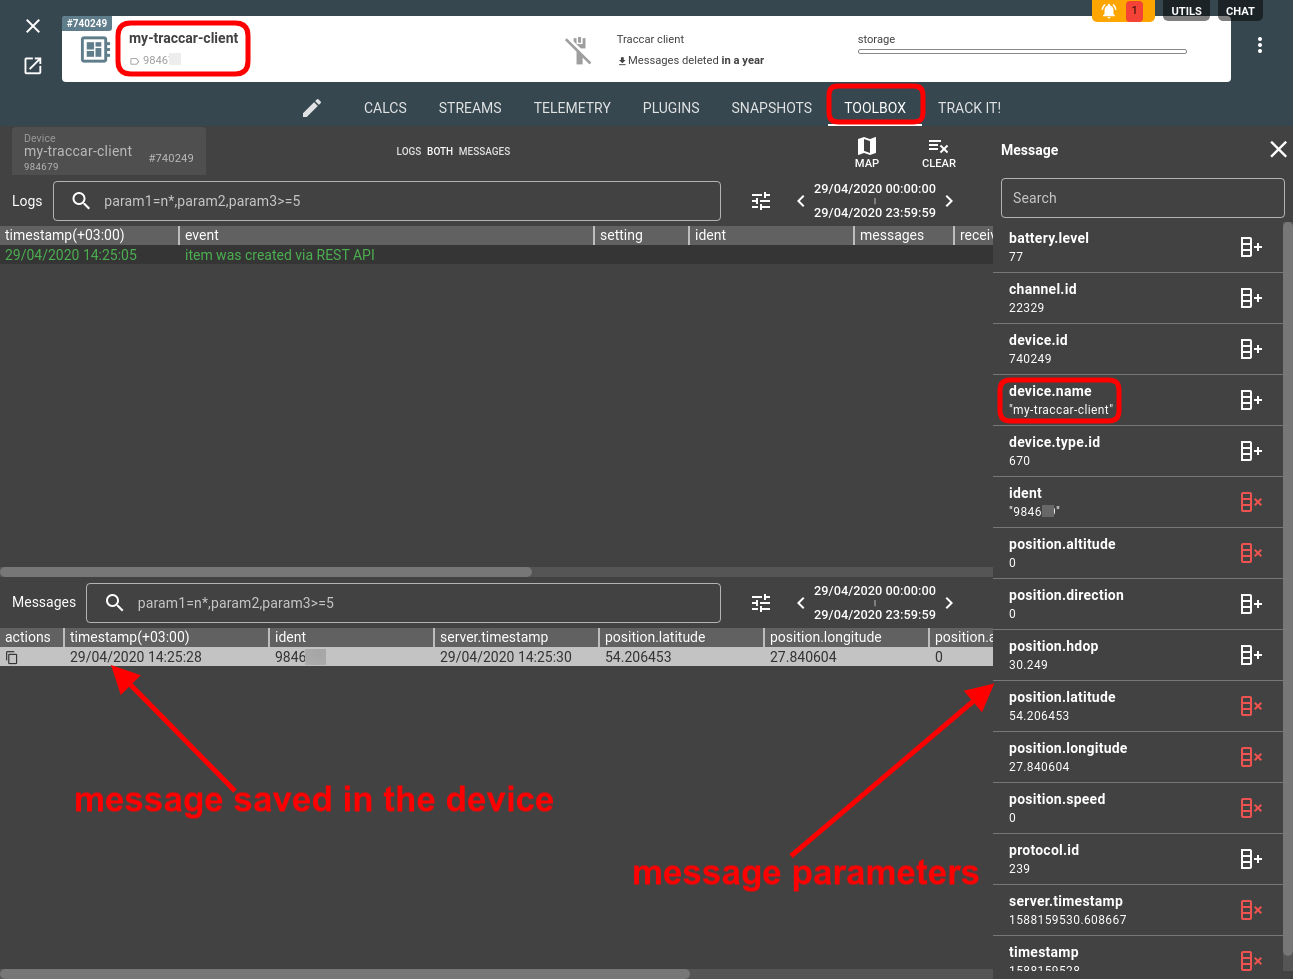 traccar client device toolbox